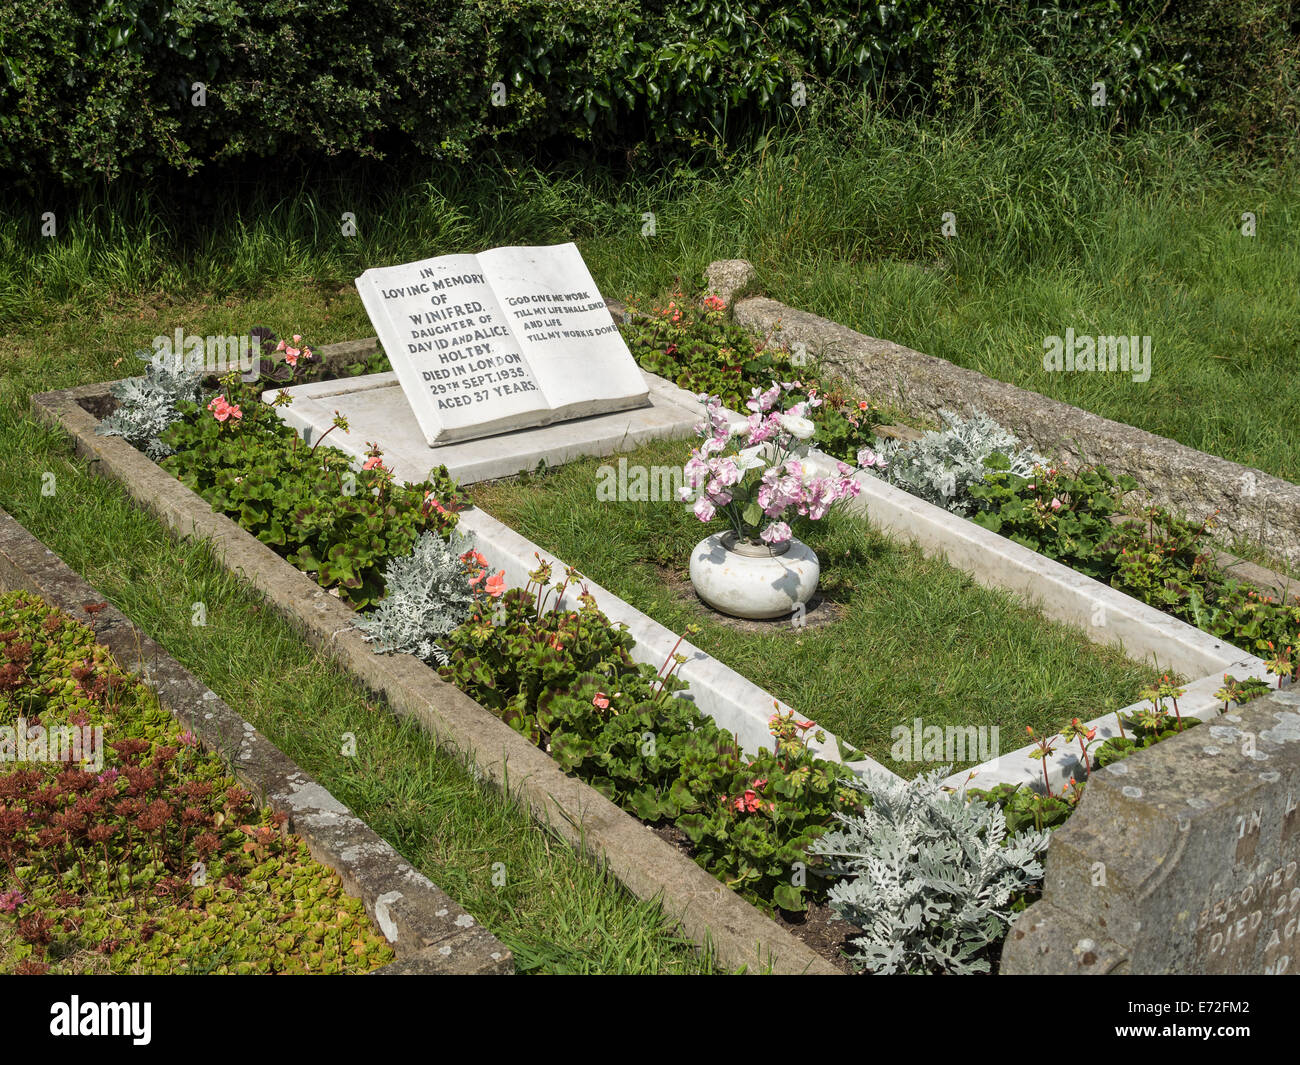 Grave Of Author Winifred Holtby In Churchyard Of All Saints Church Stock Photo Alamy